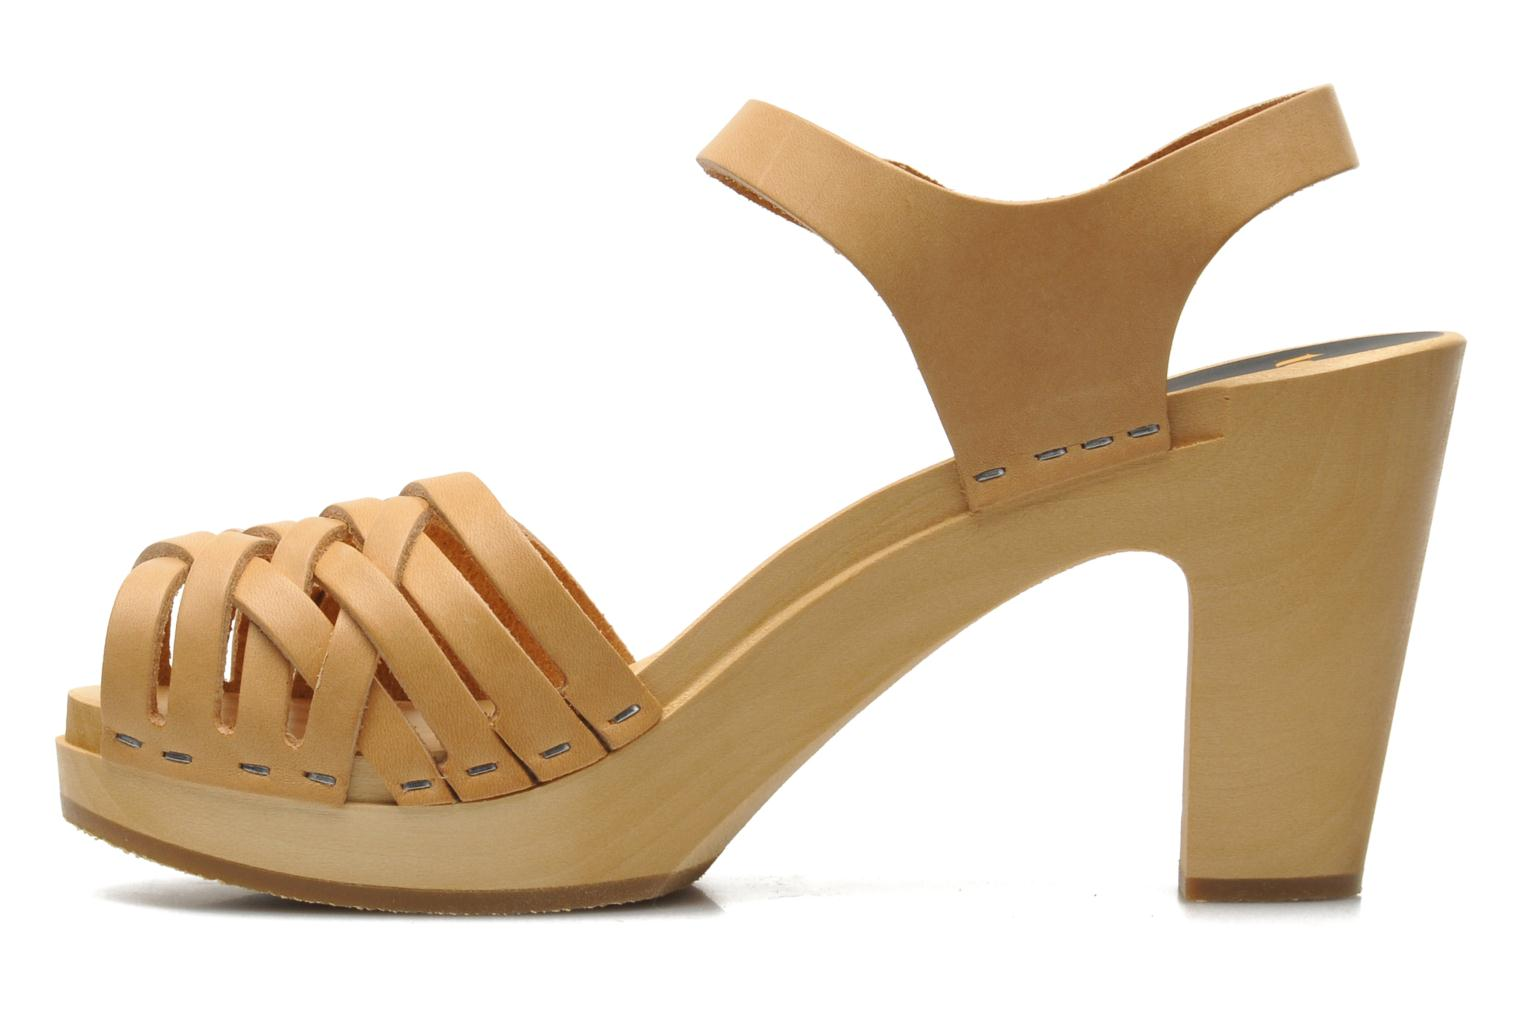 Sandales et nu-pieds Swedish Hasbeens Braided sky high Beige vue face